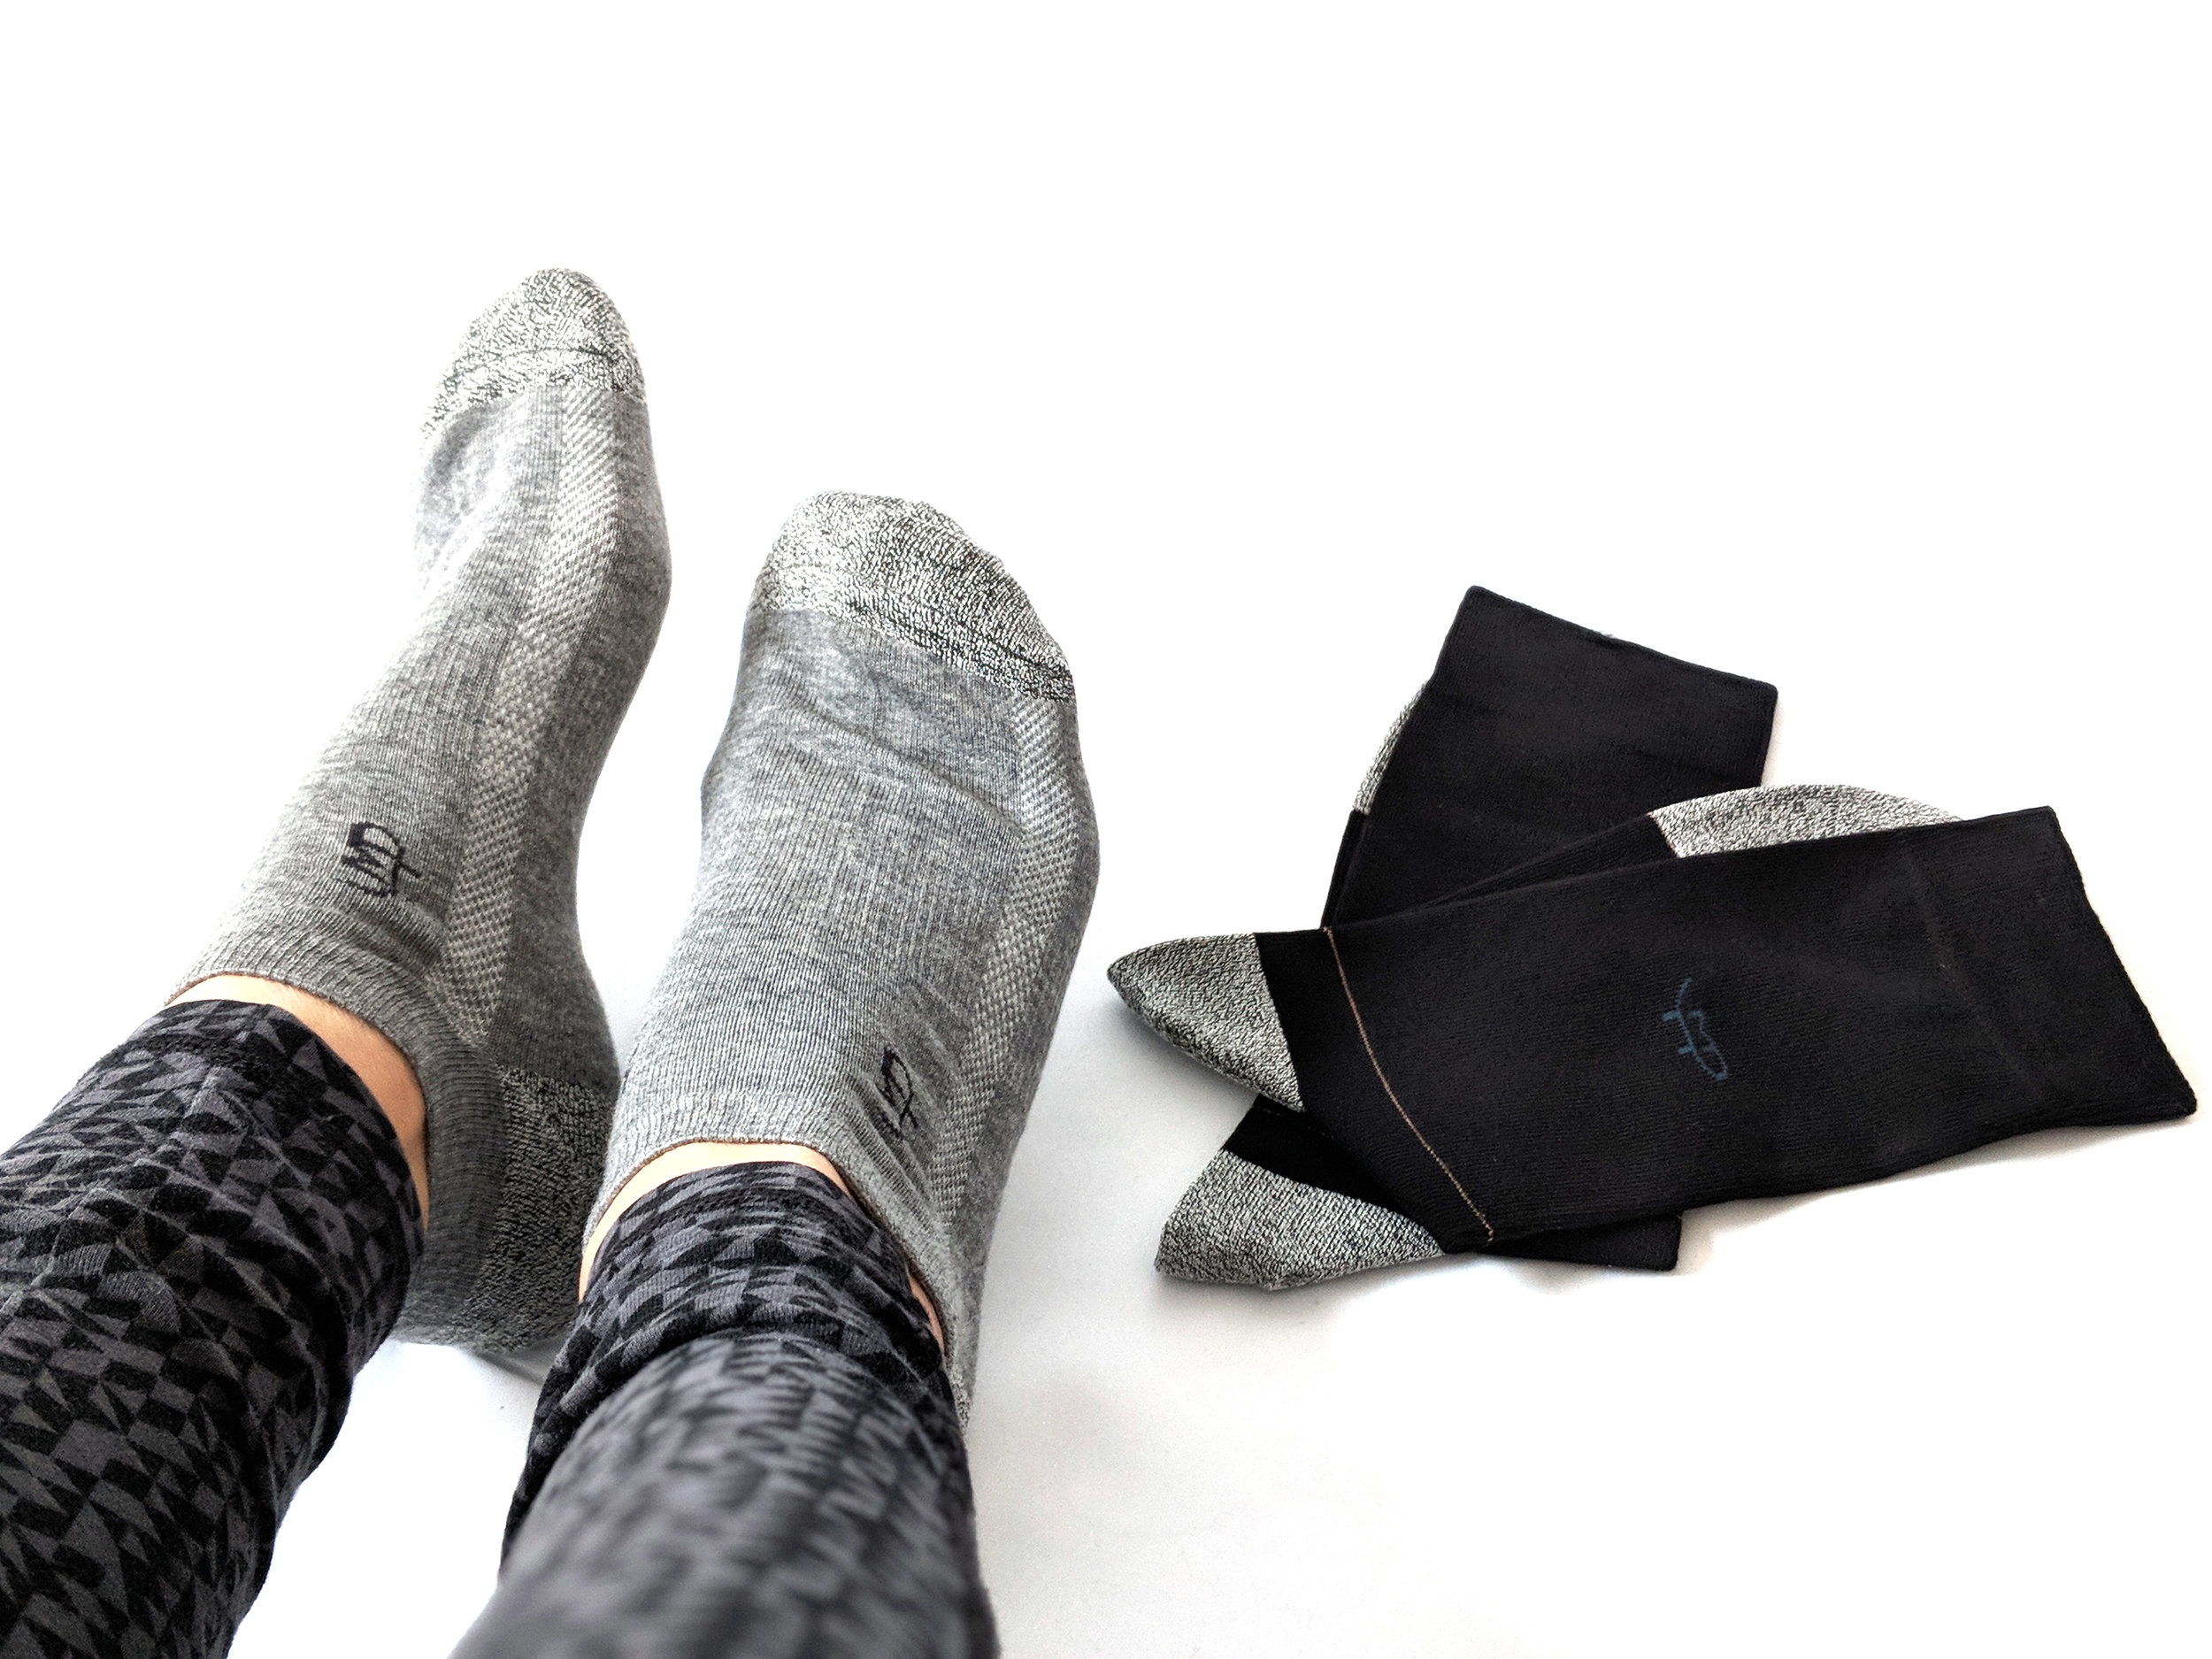 Wearing the grey ankle socks and flat lay of the black crew socks - Photo Credit: The Sock Review